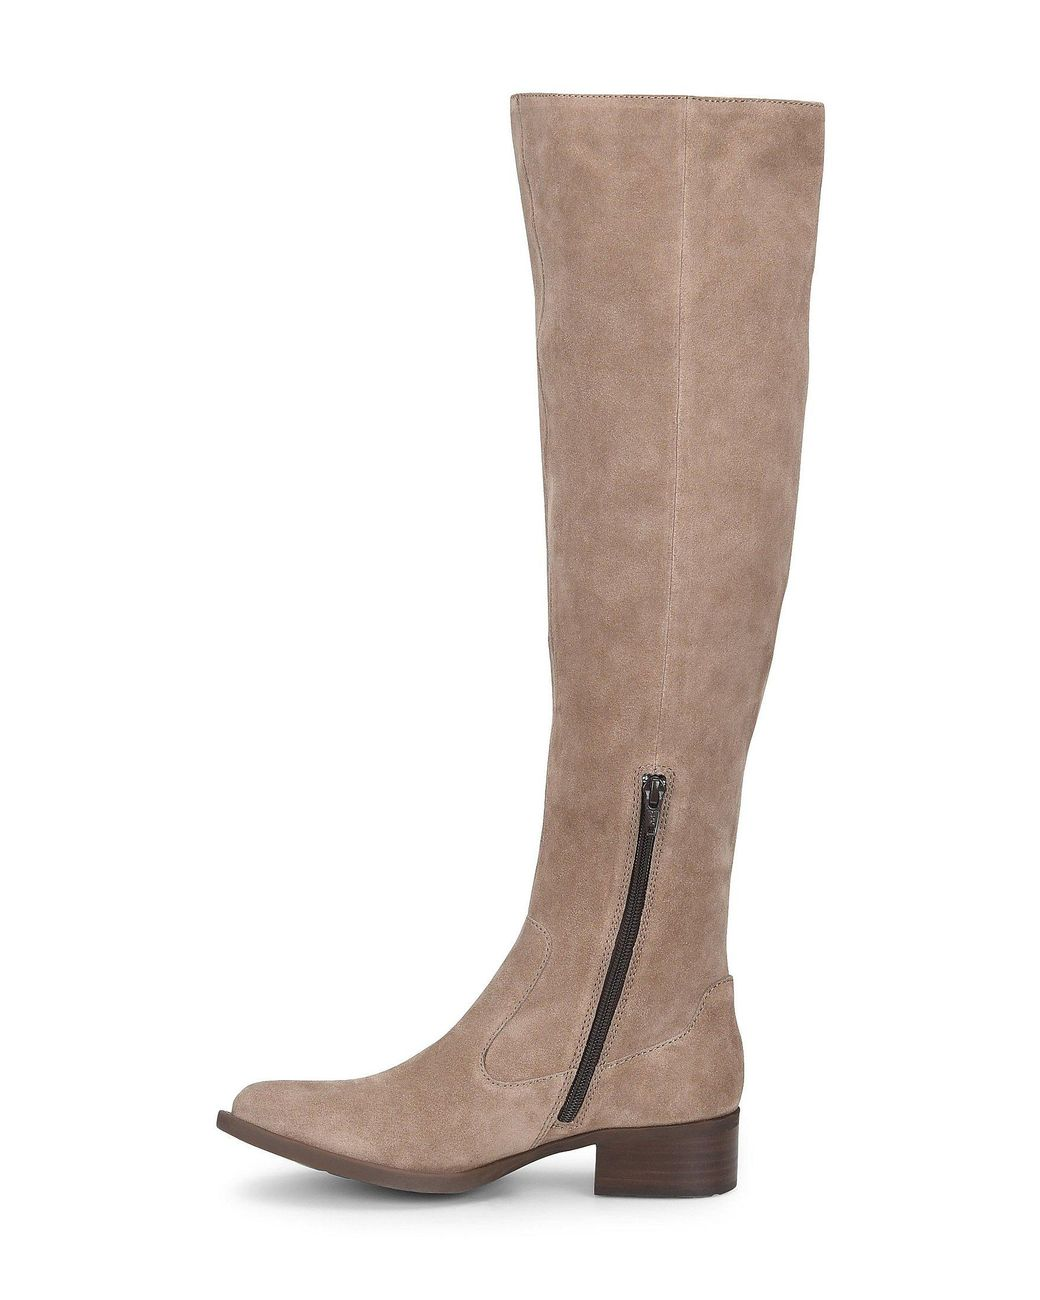 b7138b1162 Born Cricket Tall Suede Block Heel Boots in Brown - Save 58% - Lyst